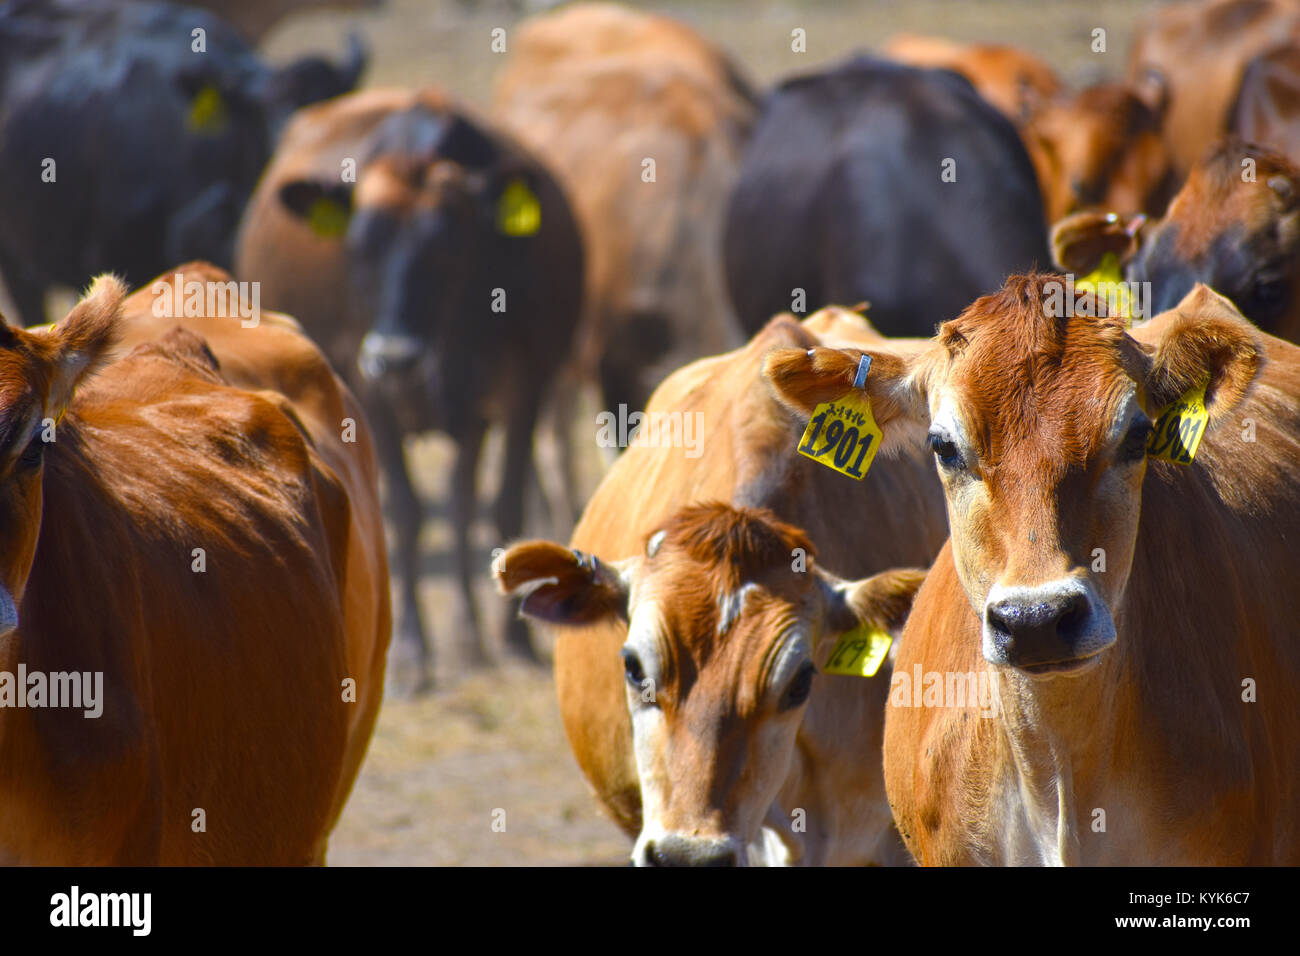 Selective focus on cow 1901 - all other cows are out of focus.  A herd of beef cattle at a ranch in Ferndale, Washington, - Stock Image